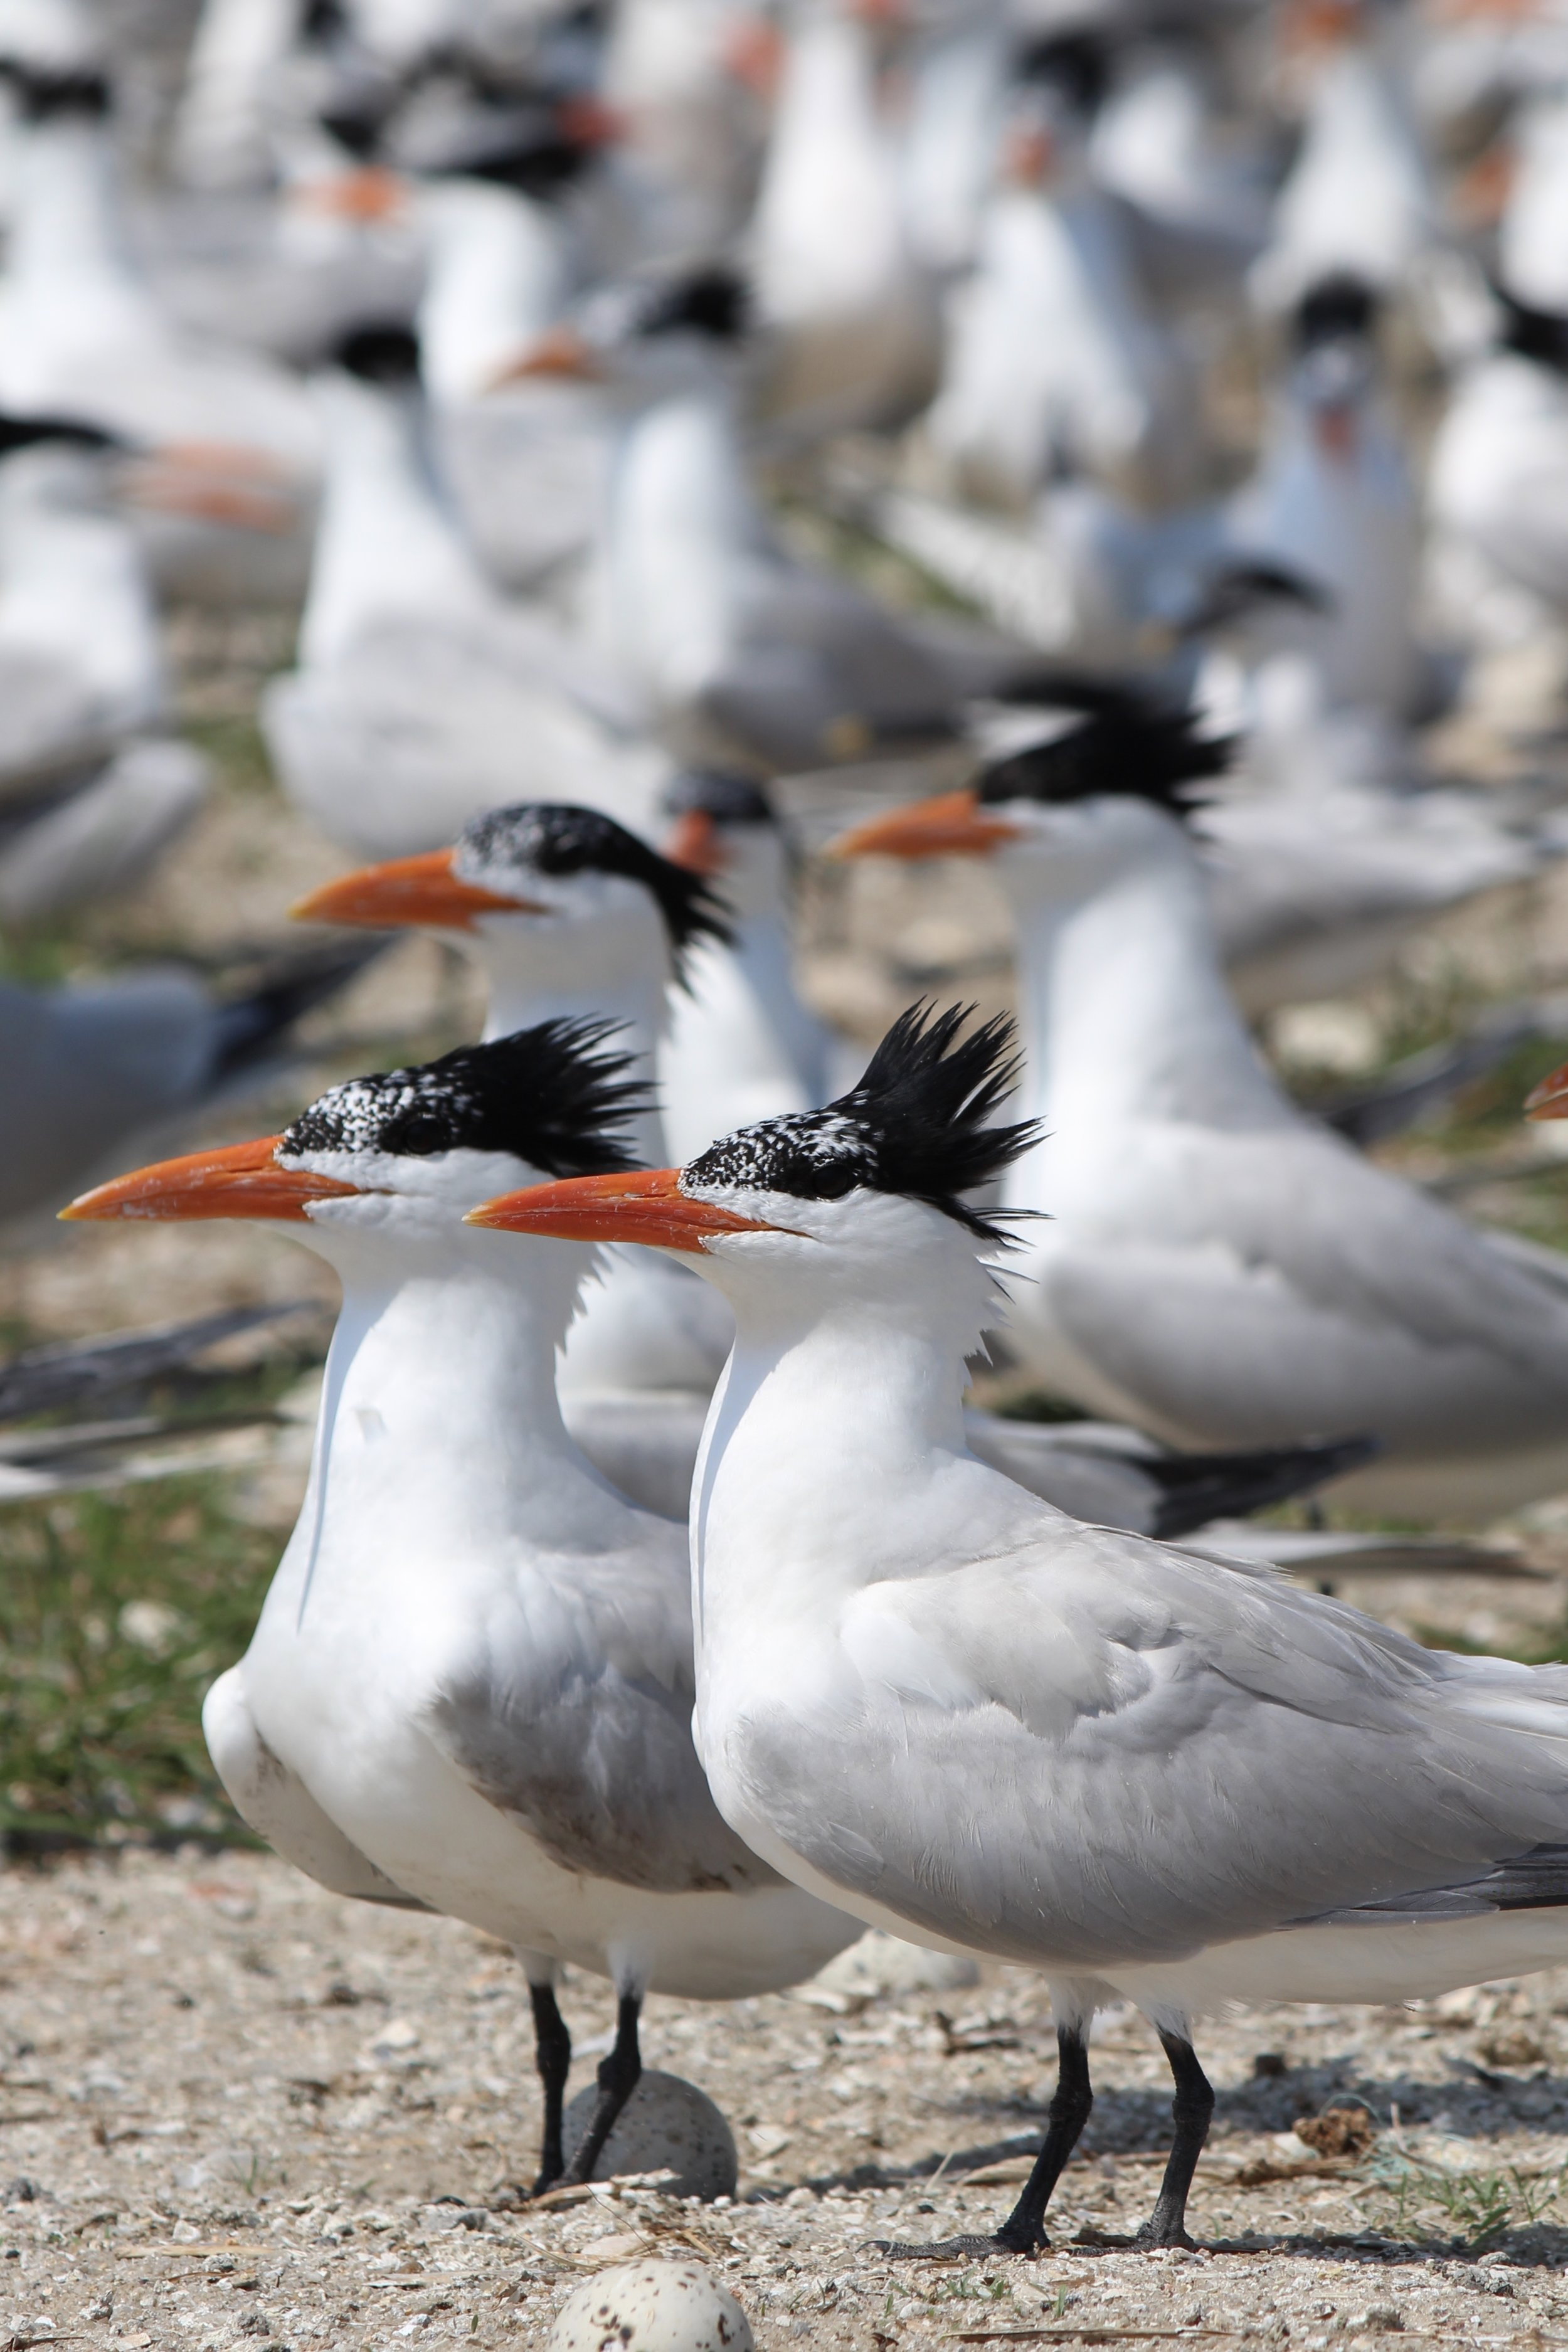 Royal terns sport pretty distinctive 'dos and bright orange bills. They're also fairly large among terns. (Photo: E. Weeks/SCDNR)